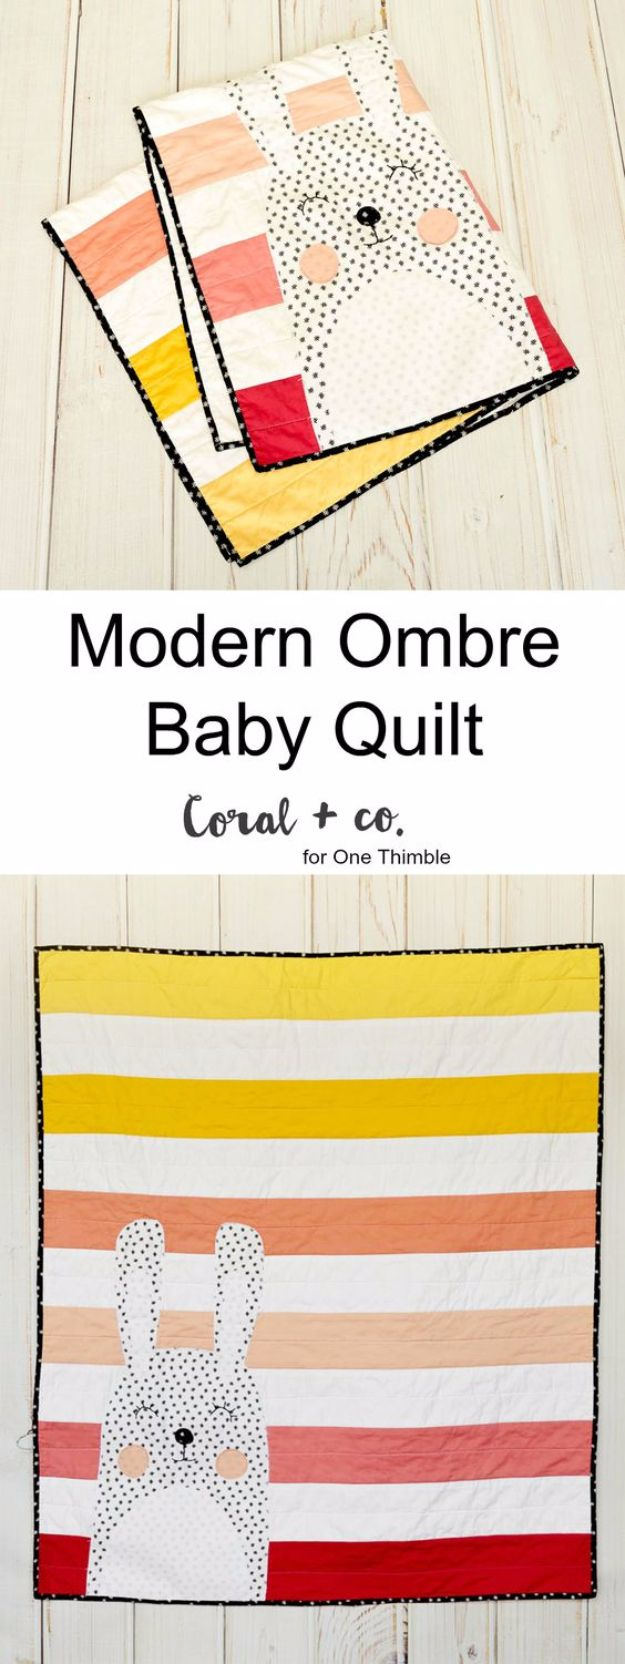 51 Things to Sew for Baby - Modern Ombre Baby Quilt - Cool Gifts For Baby, Easy Things To Sew And Sell, Quick Things To Sew For Baby, Easy Baby Sewing Projects For Beginners, Baby Items To Sew And Sell http://diyjoy.com/sewing-projects-for-baby